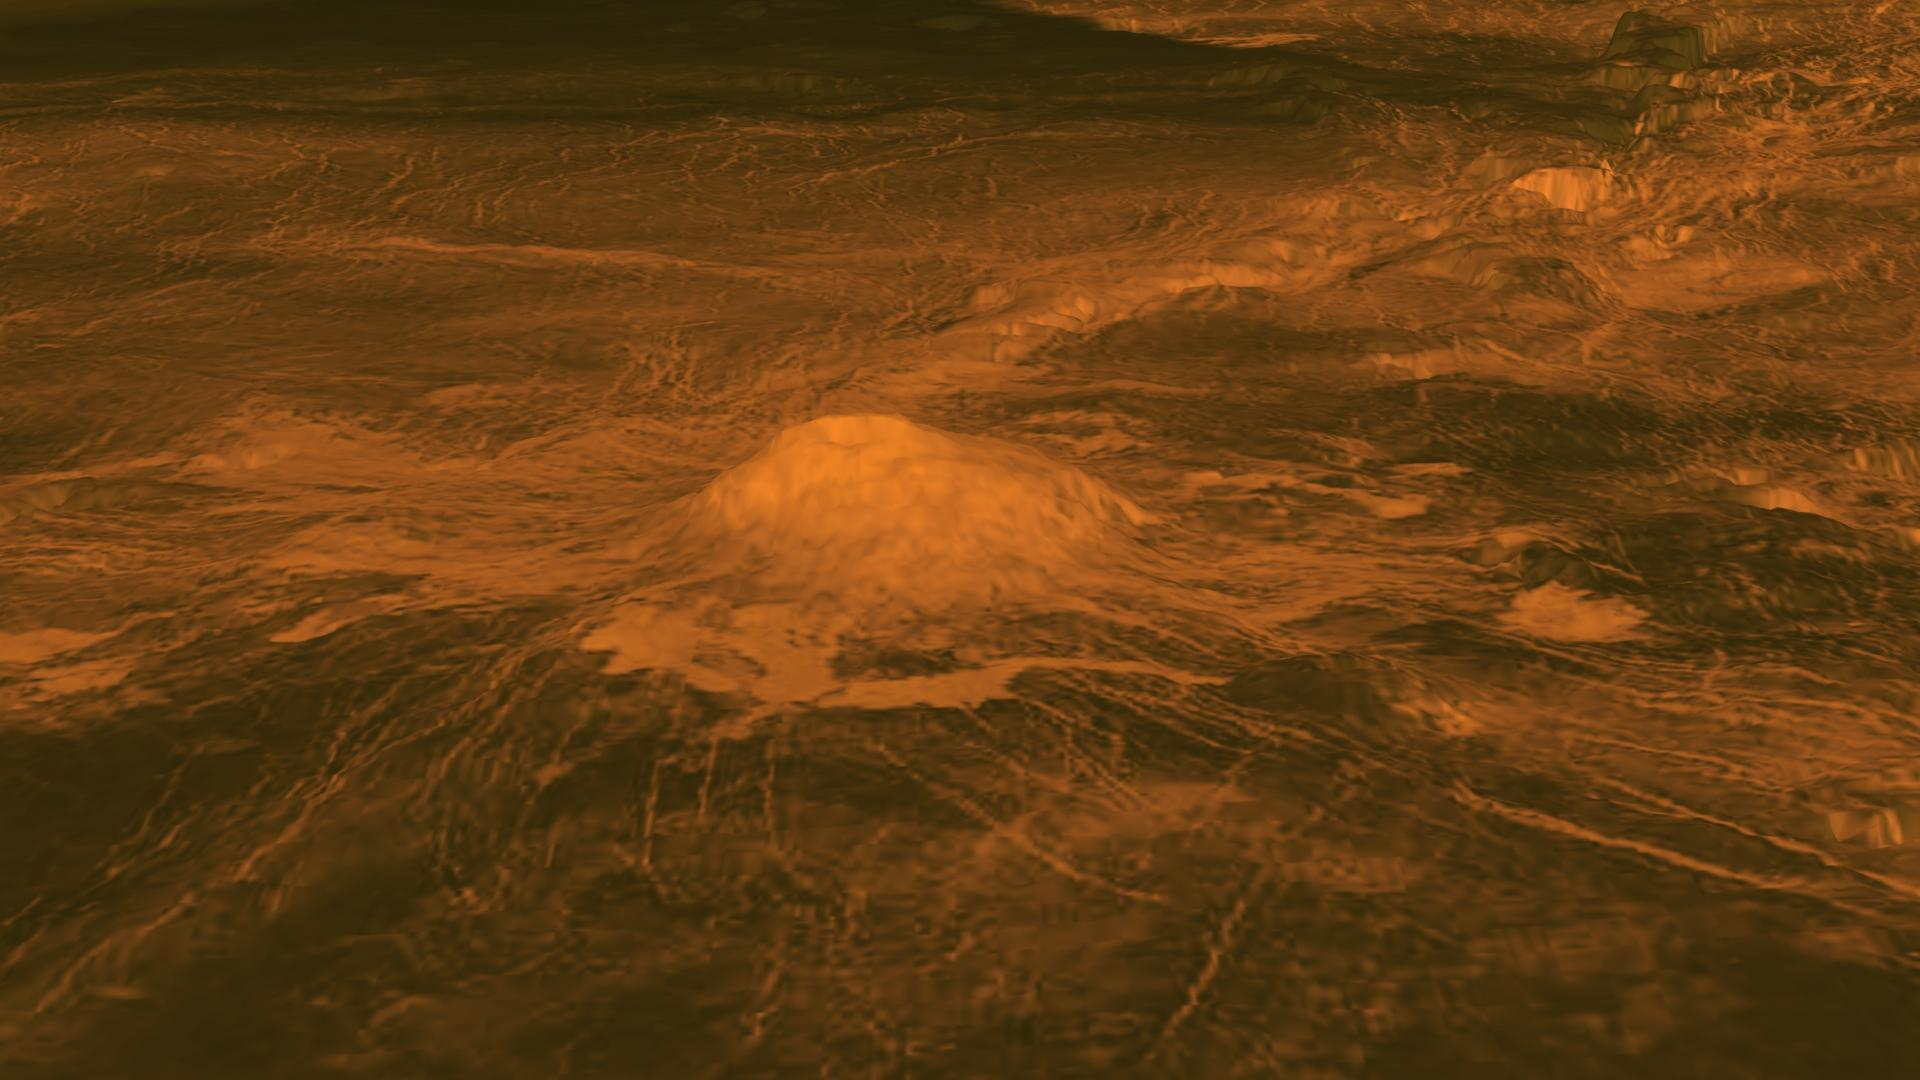 planet venus surface photos - photo #15